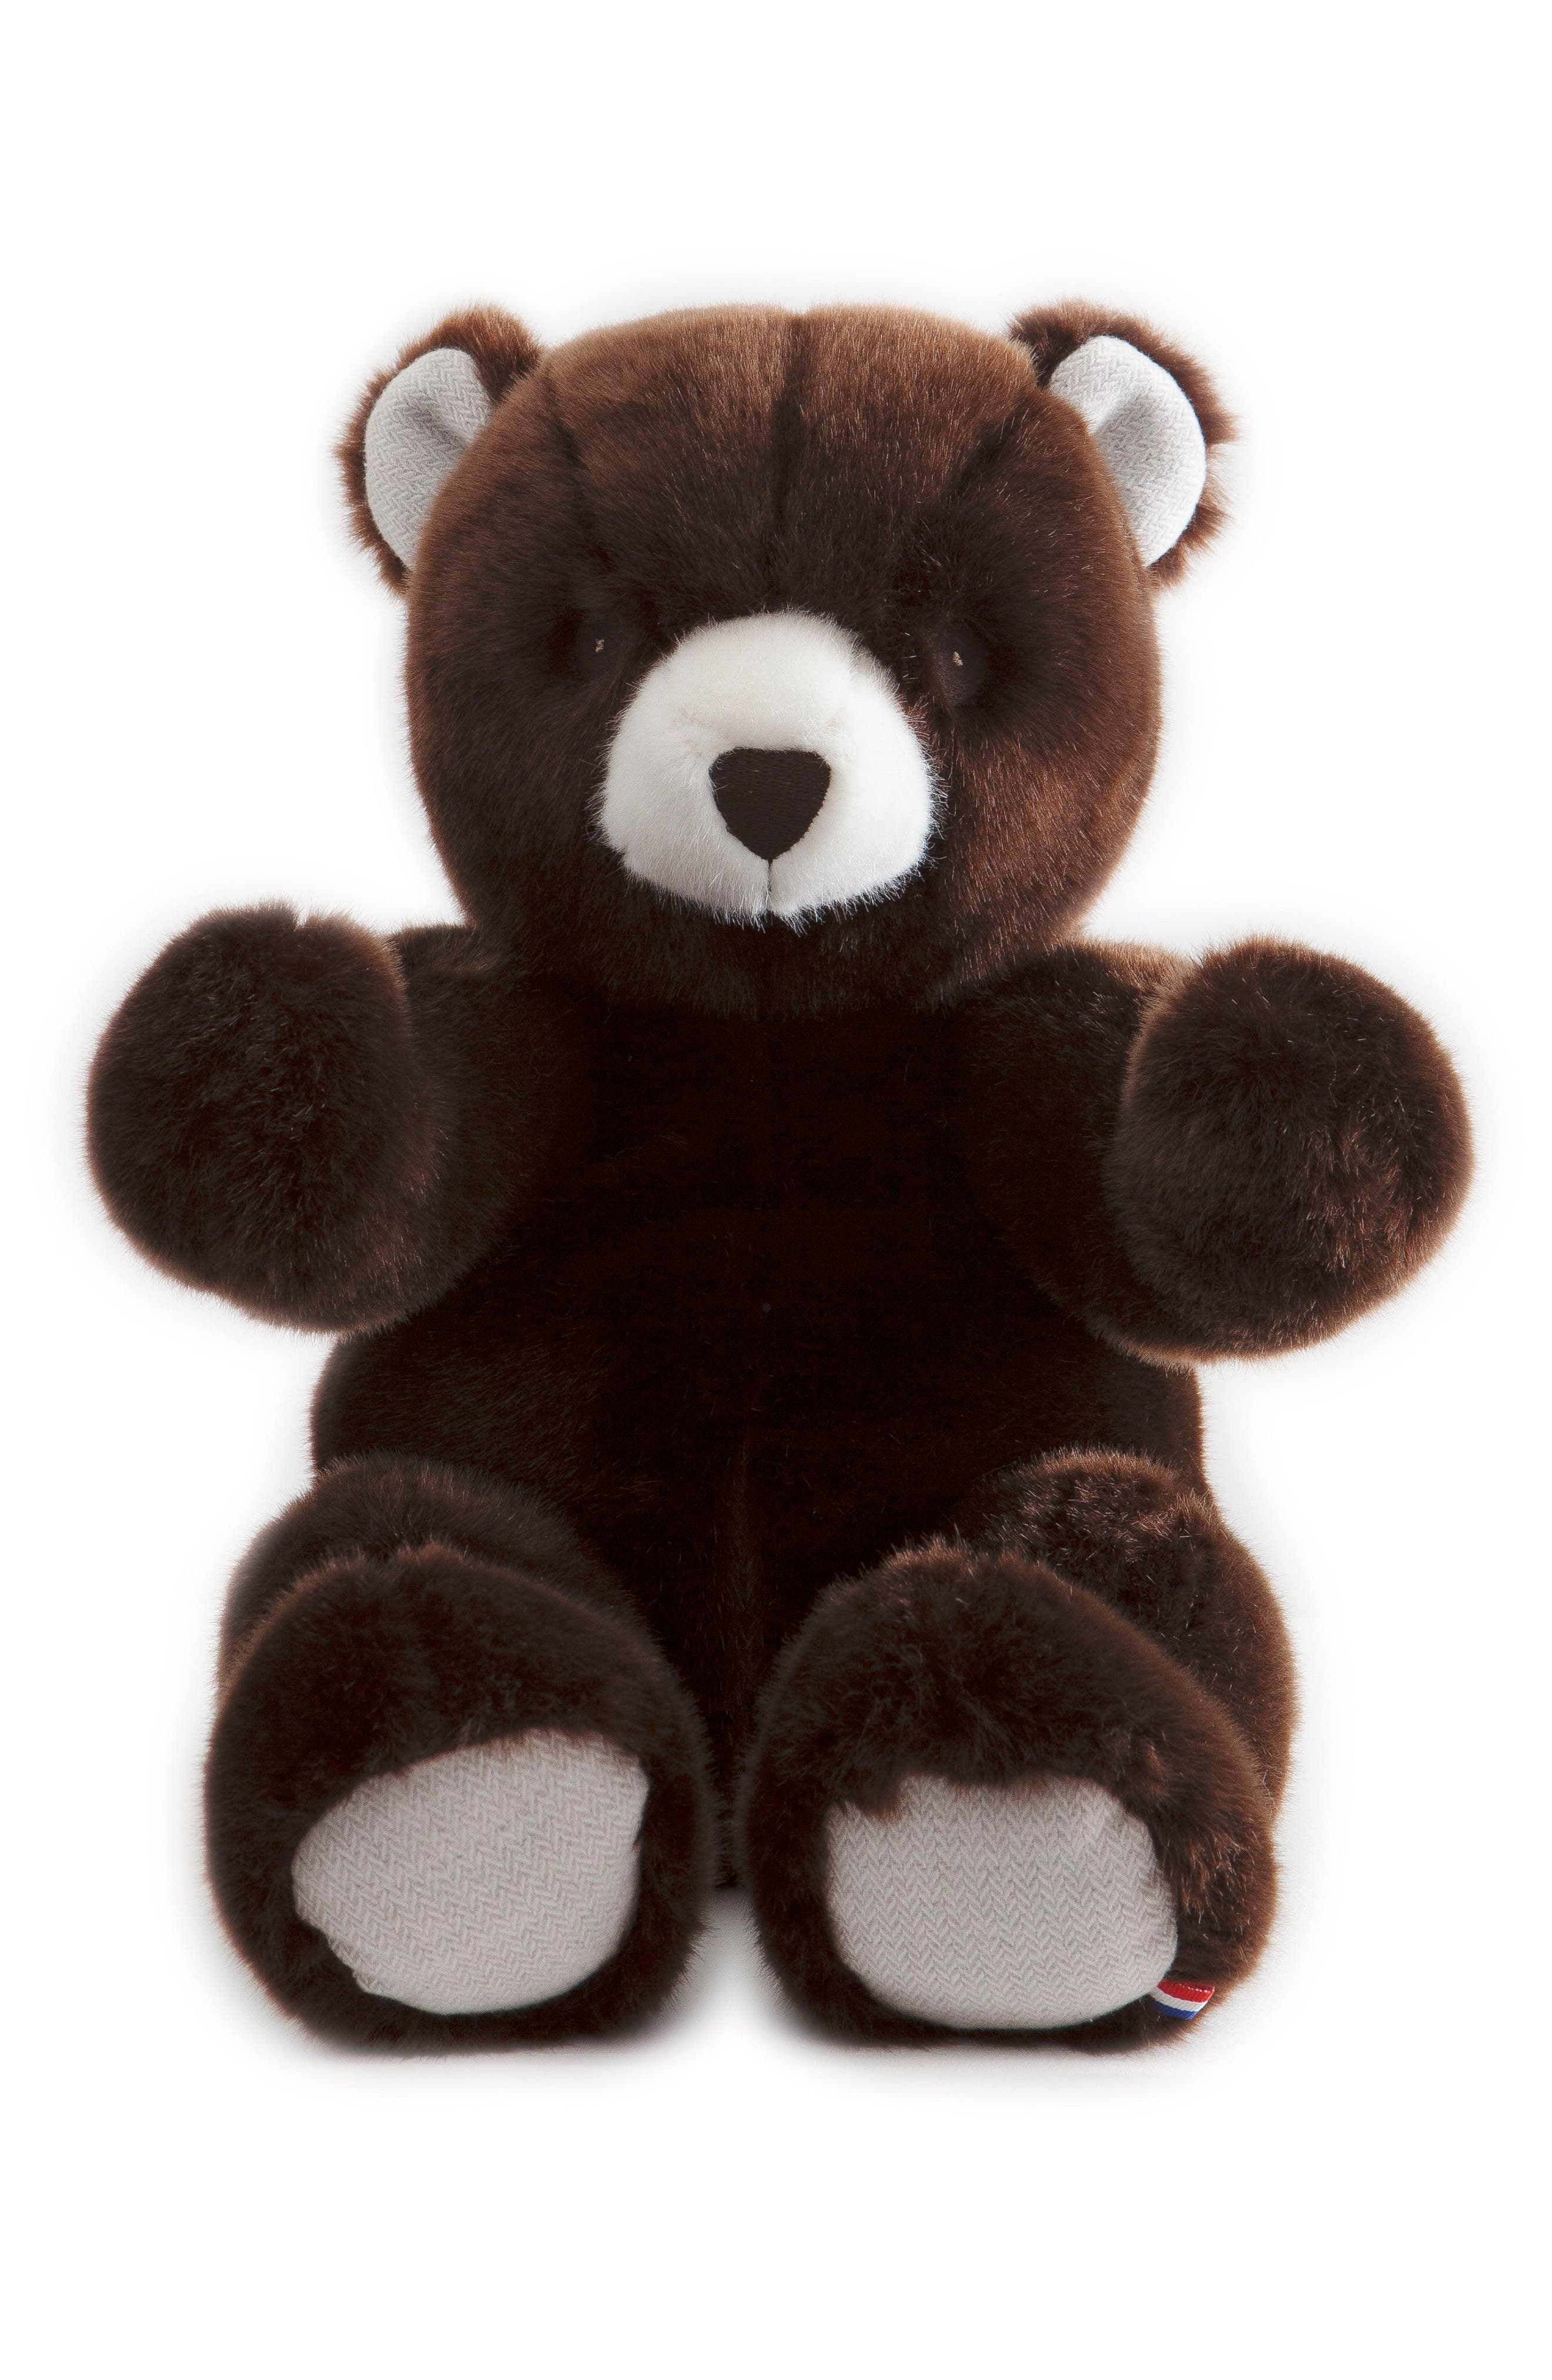 Robert the Bear Stuffed Animal,                             Main thumbnail 1, color,                             BROWN